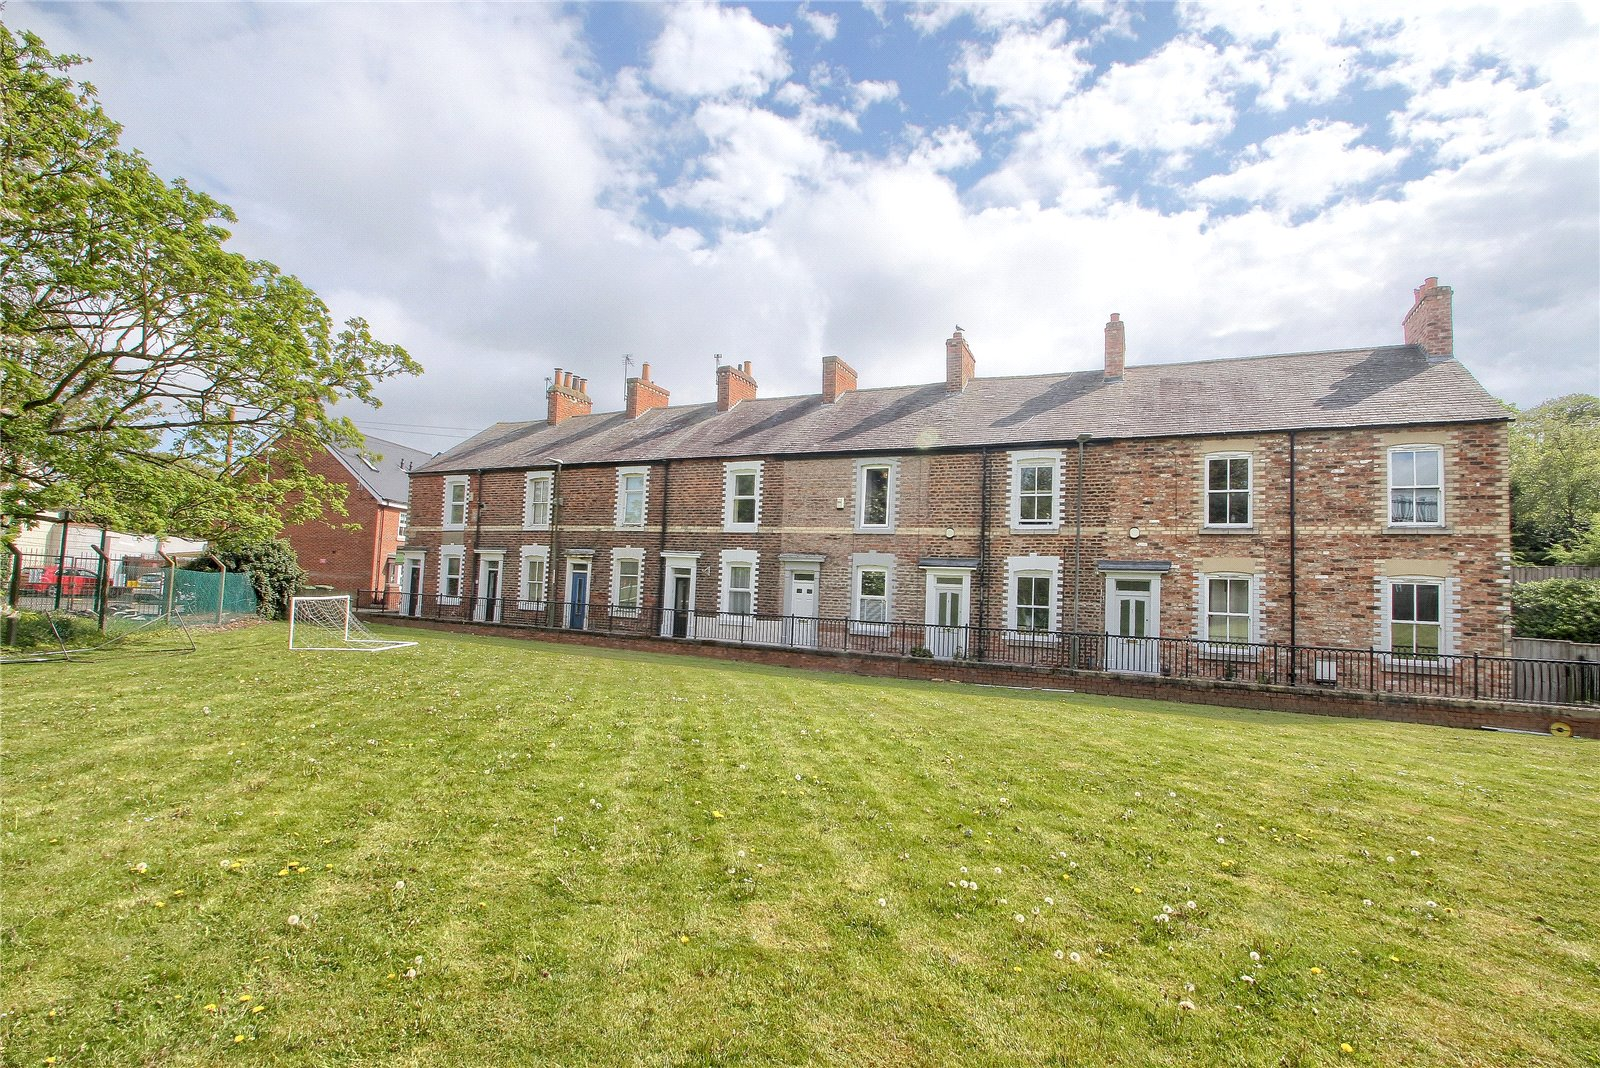 2 bed house for sale in Hermitage Place, Norton  - Property Image 1